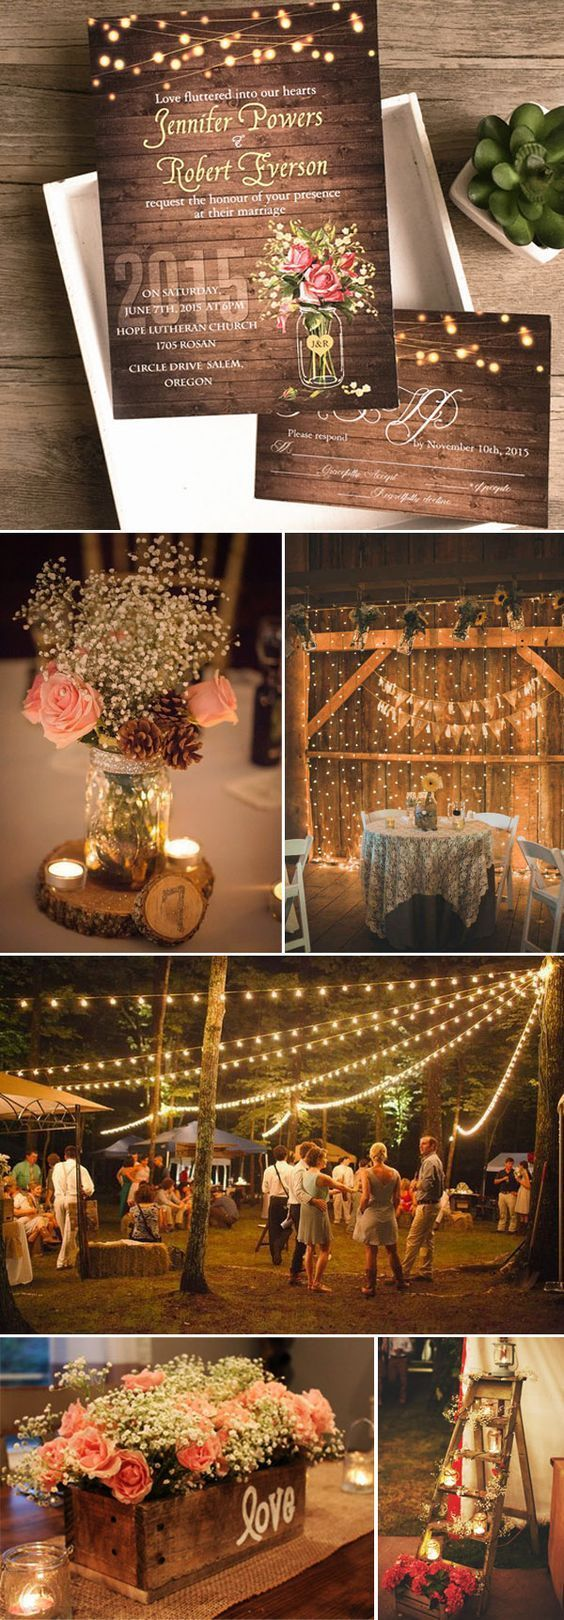 ideas for rustic wedding reception%0A cool rustic wedding colors best photos